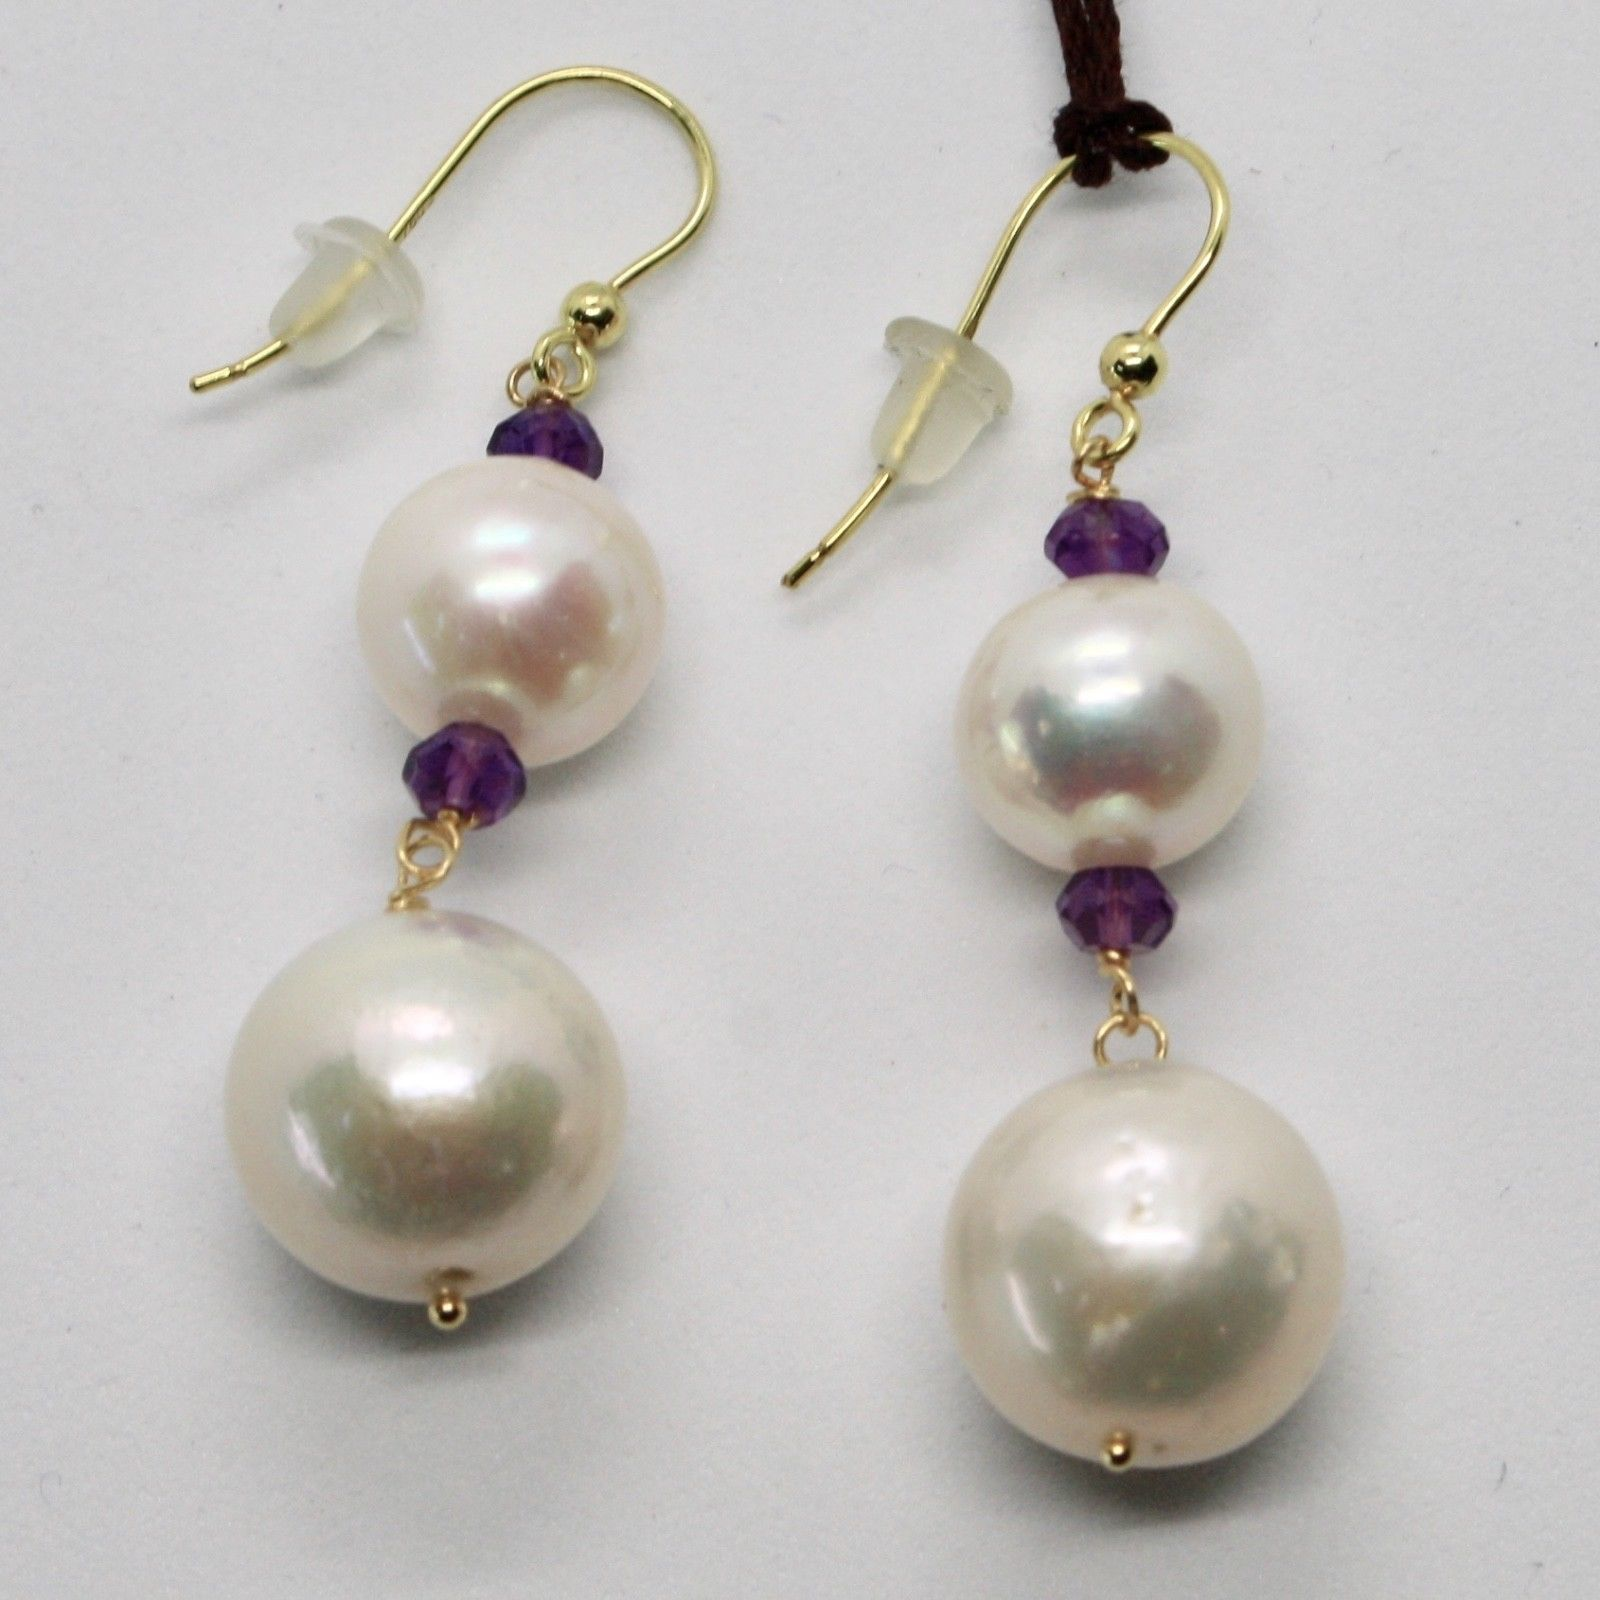 YELLOW GOLD EARRINGS 18K 750 PEARLS OF WATER DOLCE AND AMETHYST MADE IN ITALY